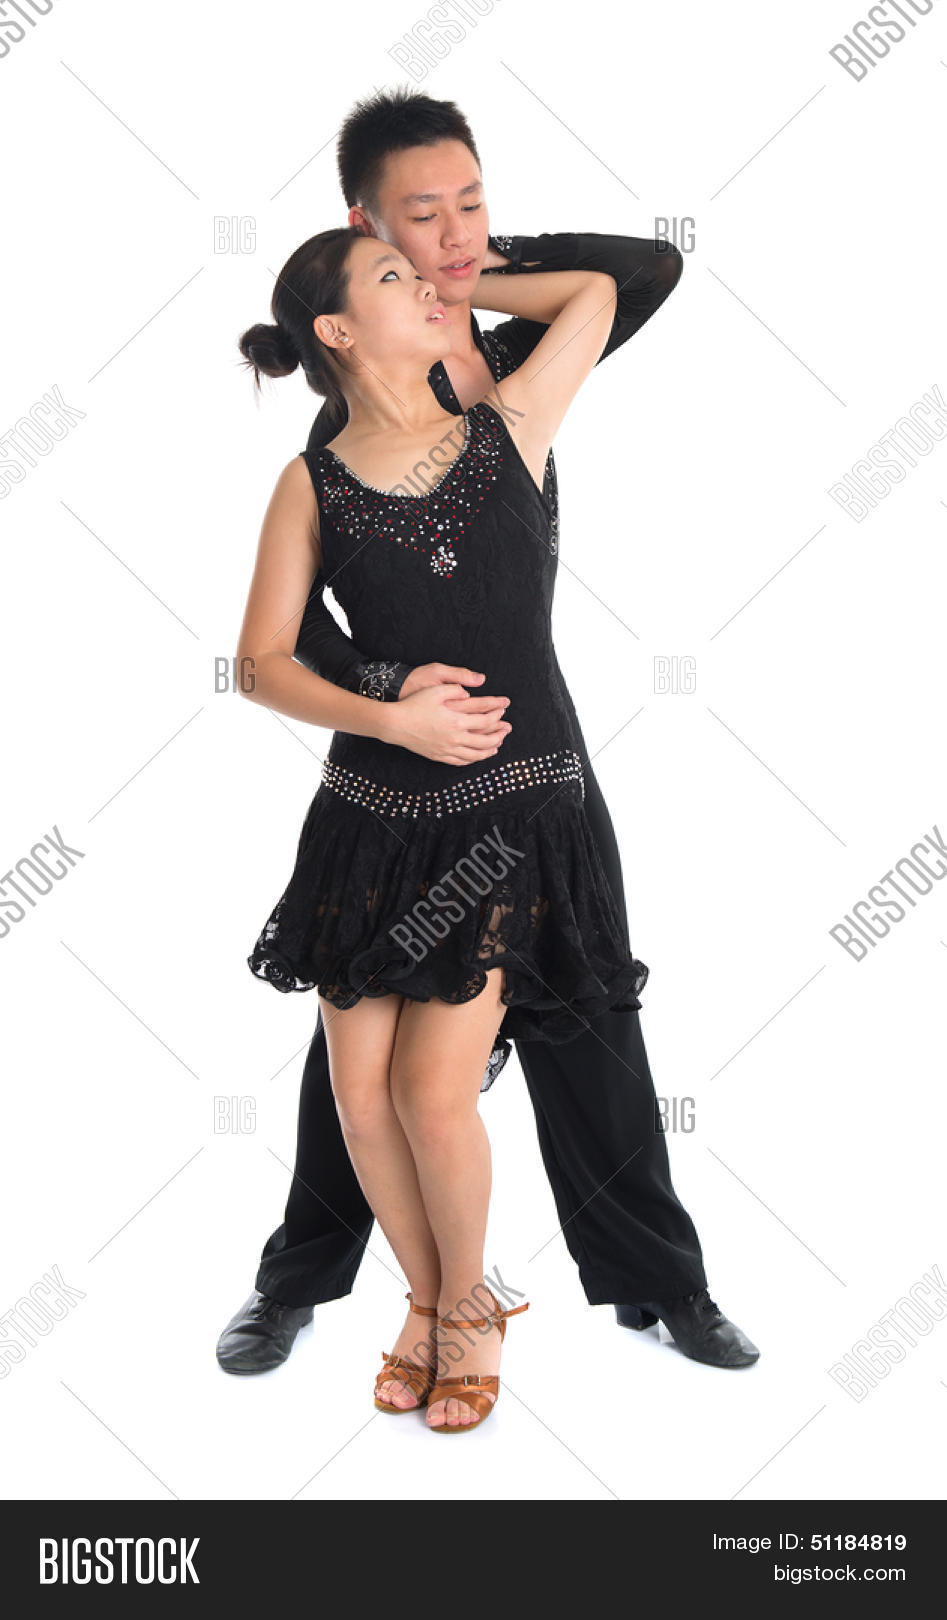 Modern Young Asian Teens Couple Latin Dancers Dancing In Front Of The Studio Background Full